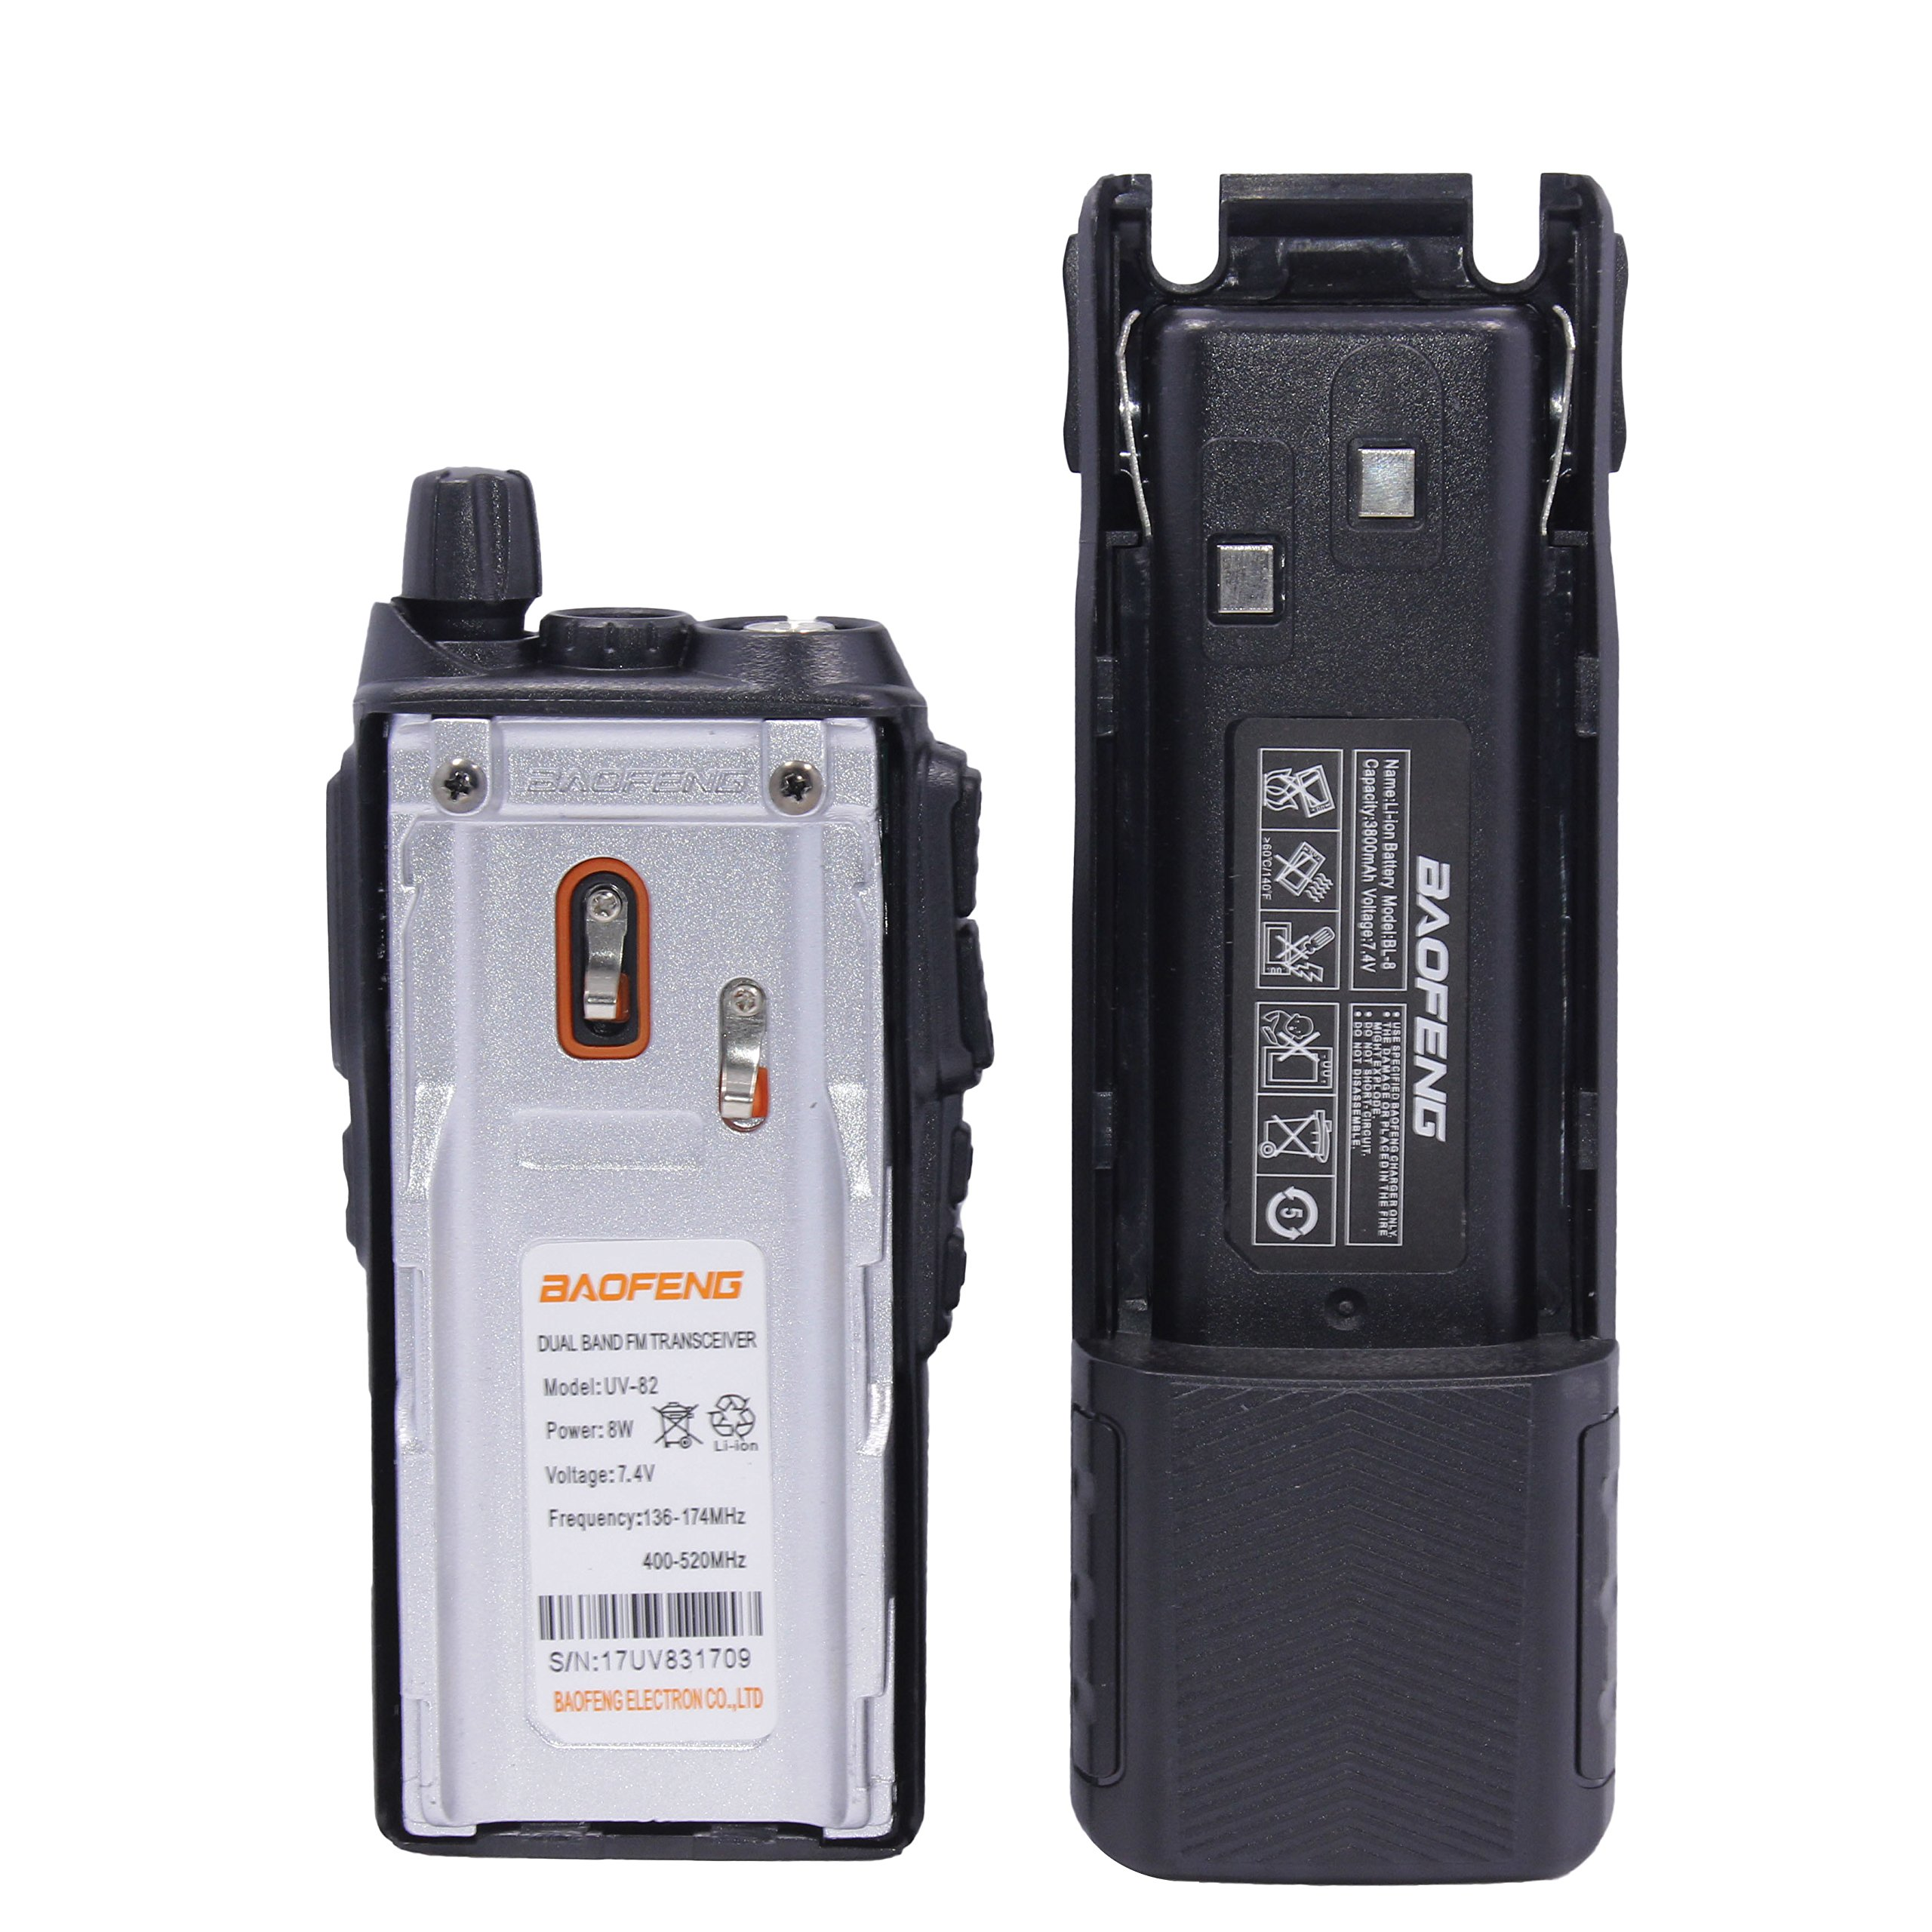 Baofeng UV-82 8W High Power 3800mAh Extended Battery Two Way Radio Dual Band Radio 136-174mhz&400-520mhz + 1 USB Programming Cable + 1 Car Charger Cable + 1 Speaker